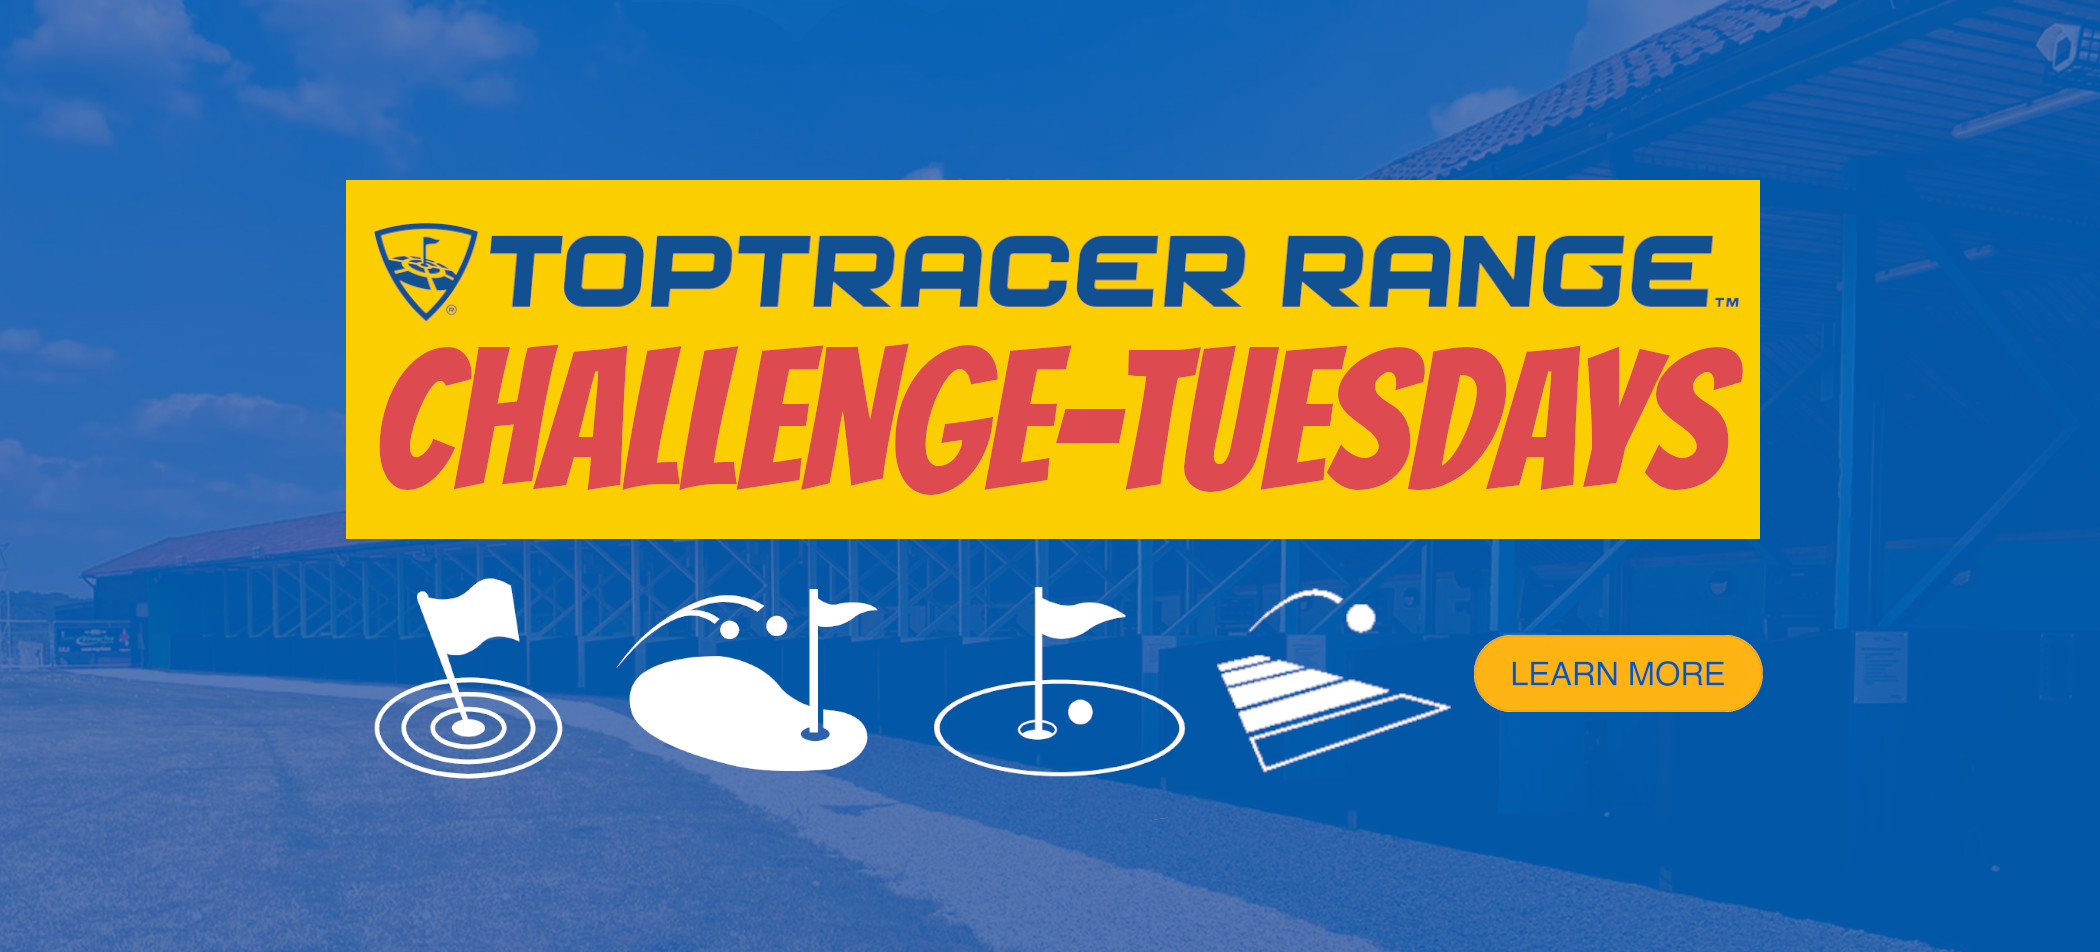 TopTracer-Challenge-Tuesdays-2